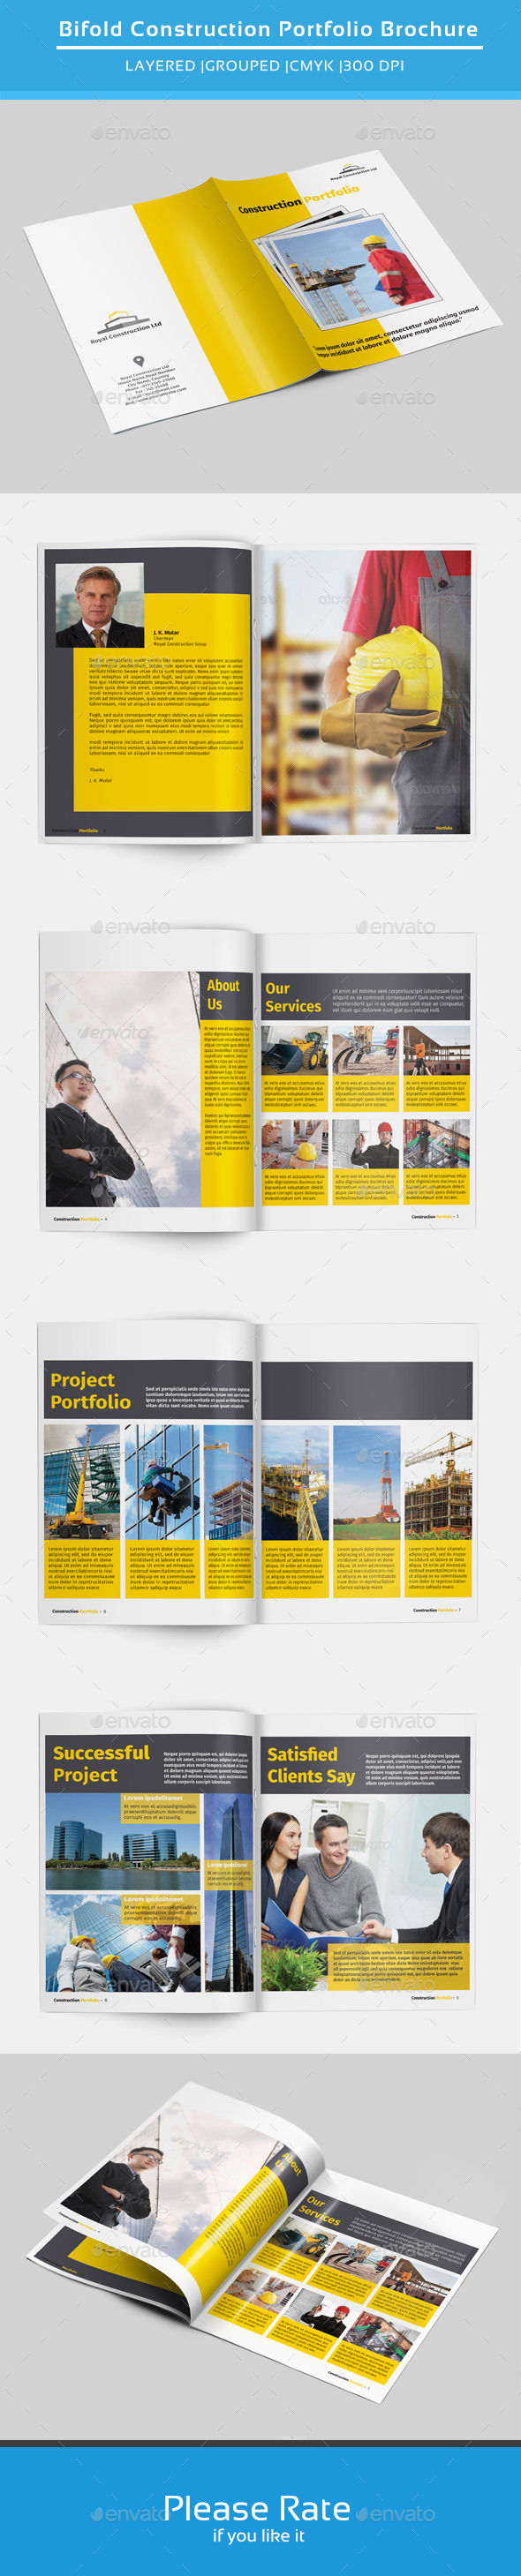 Bifold Brochure for Construction-V141 - Corporate Brochures